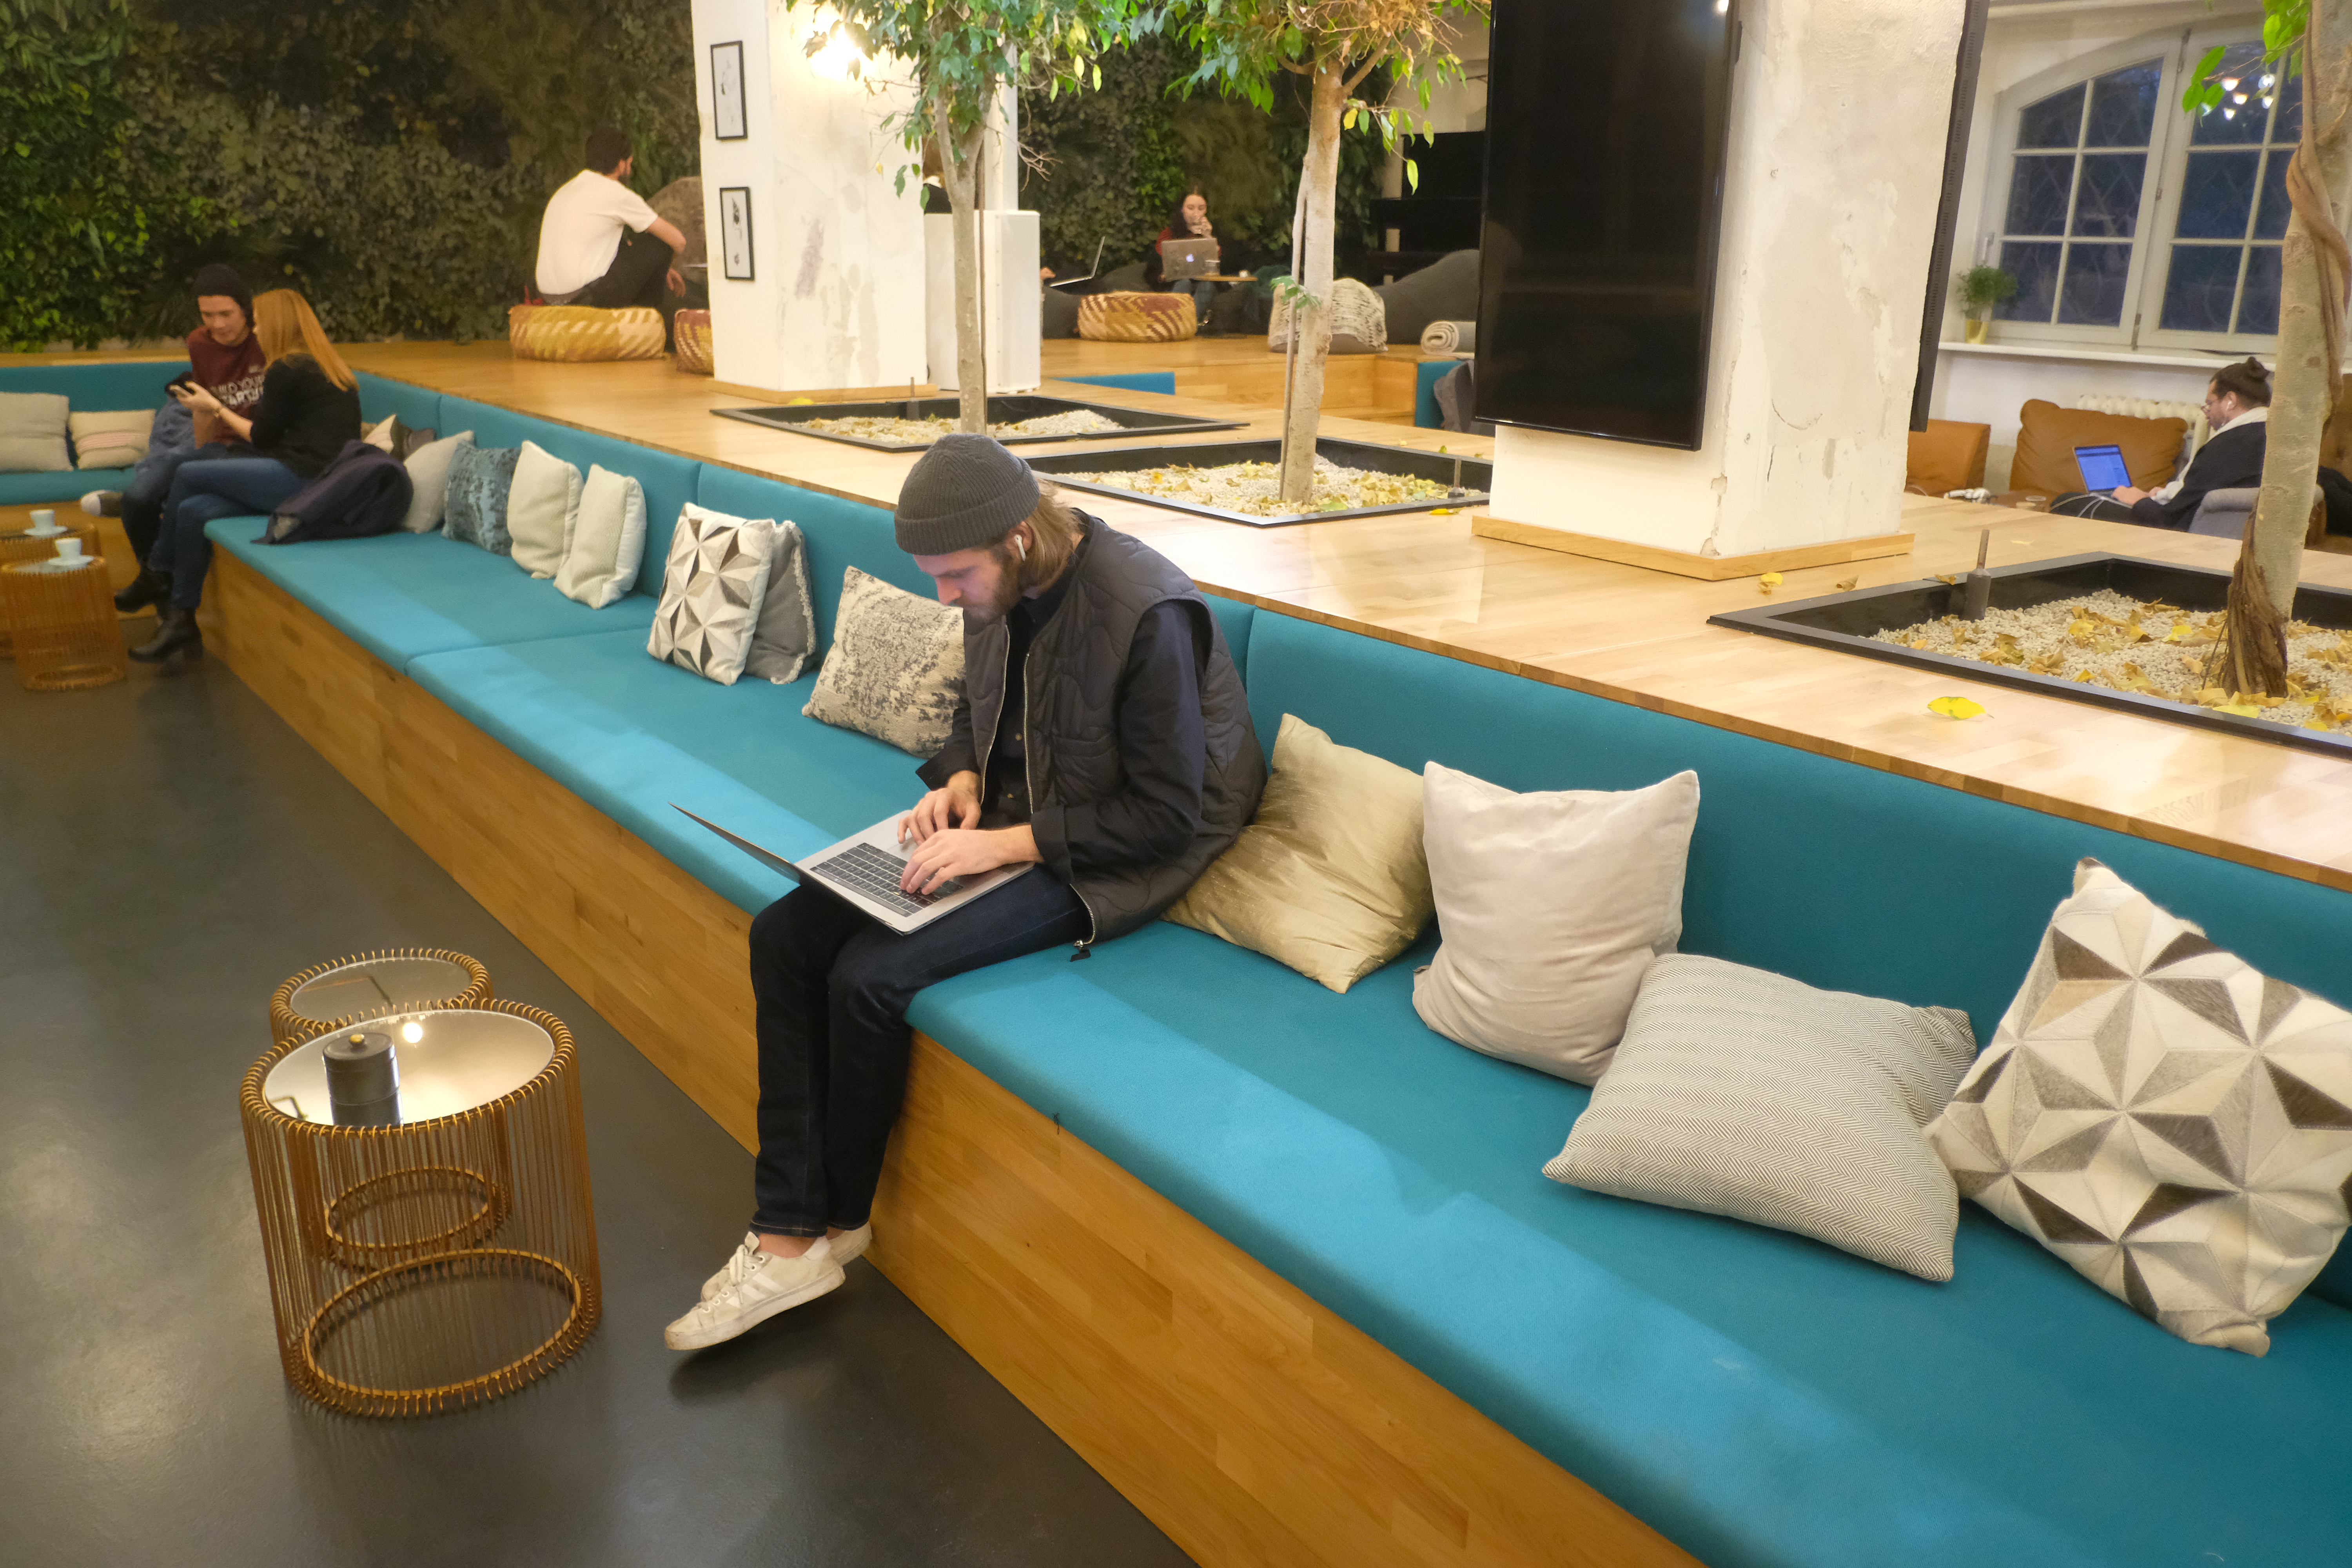 A man sits on a long bench, looking at his laptop.